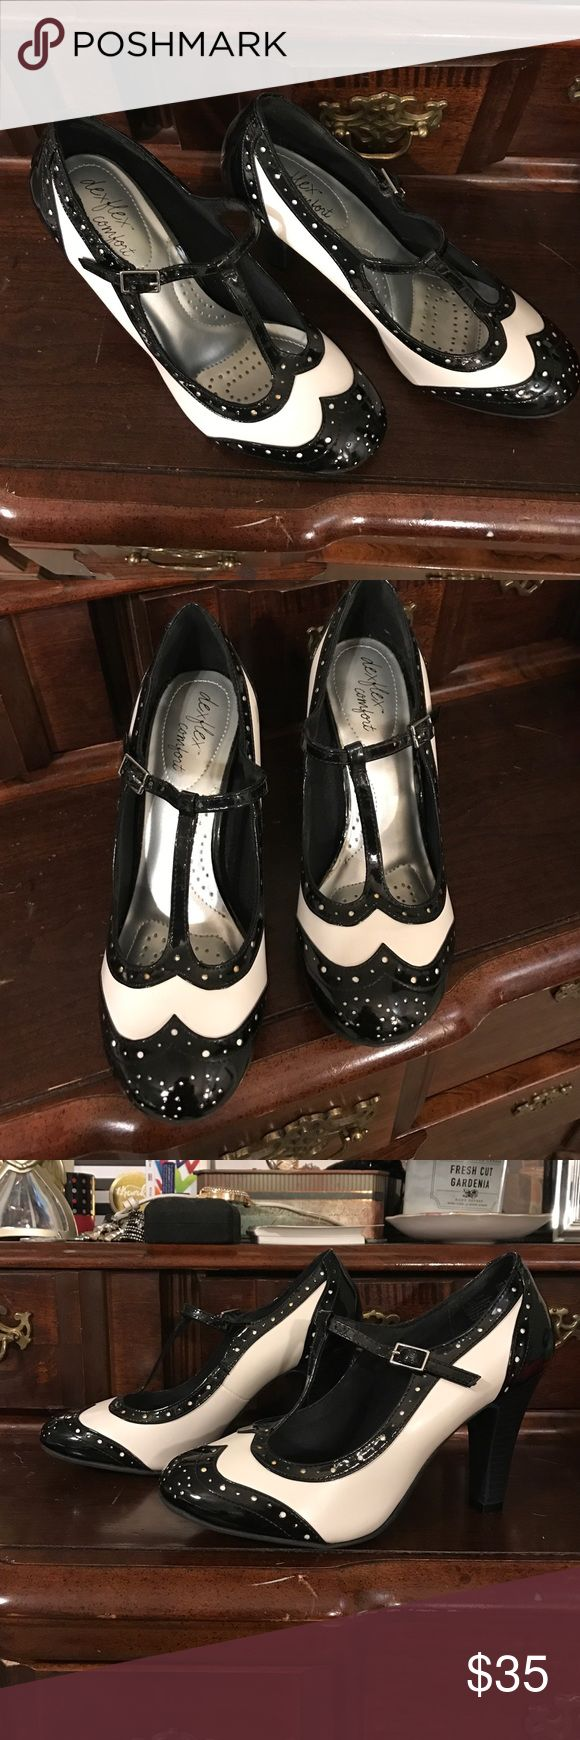 "Black &white Mary Jane comfy wingtip heels shoes 8 Super cute black-and-white, wingtip  pinup style heels shoes. Brand-new unused super comfy by dexflex comfort brand. 4"" heel and the soles are padded like shock absorbers. New no big, threw it away. DexFlex comfort Shoes Heels"